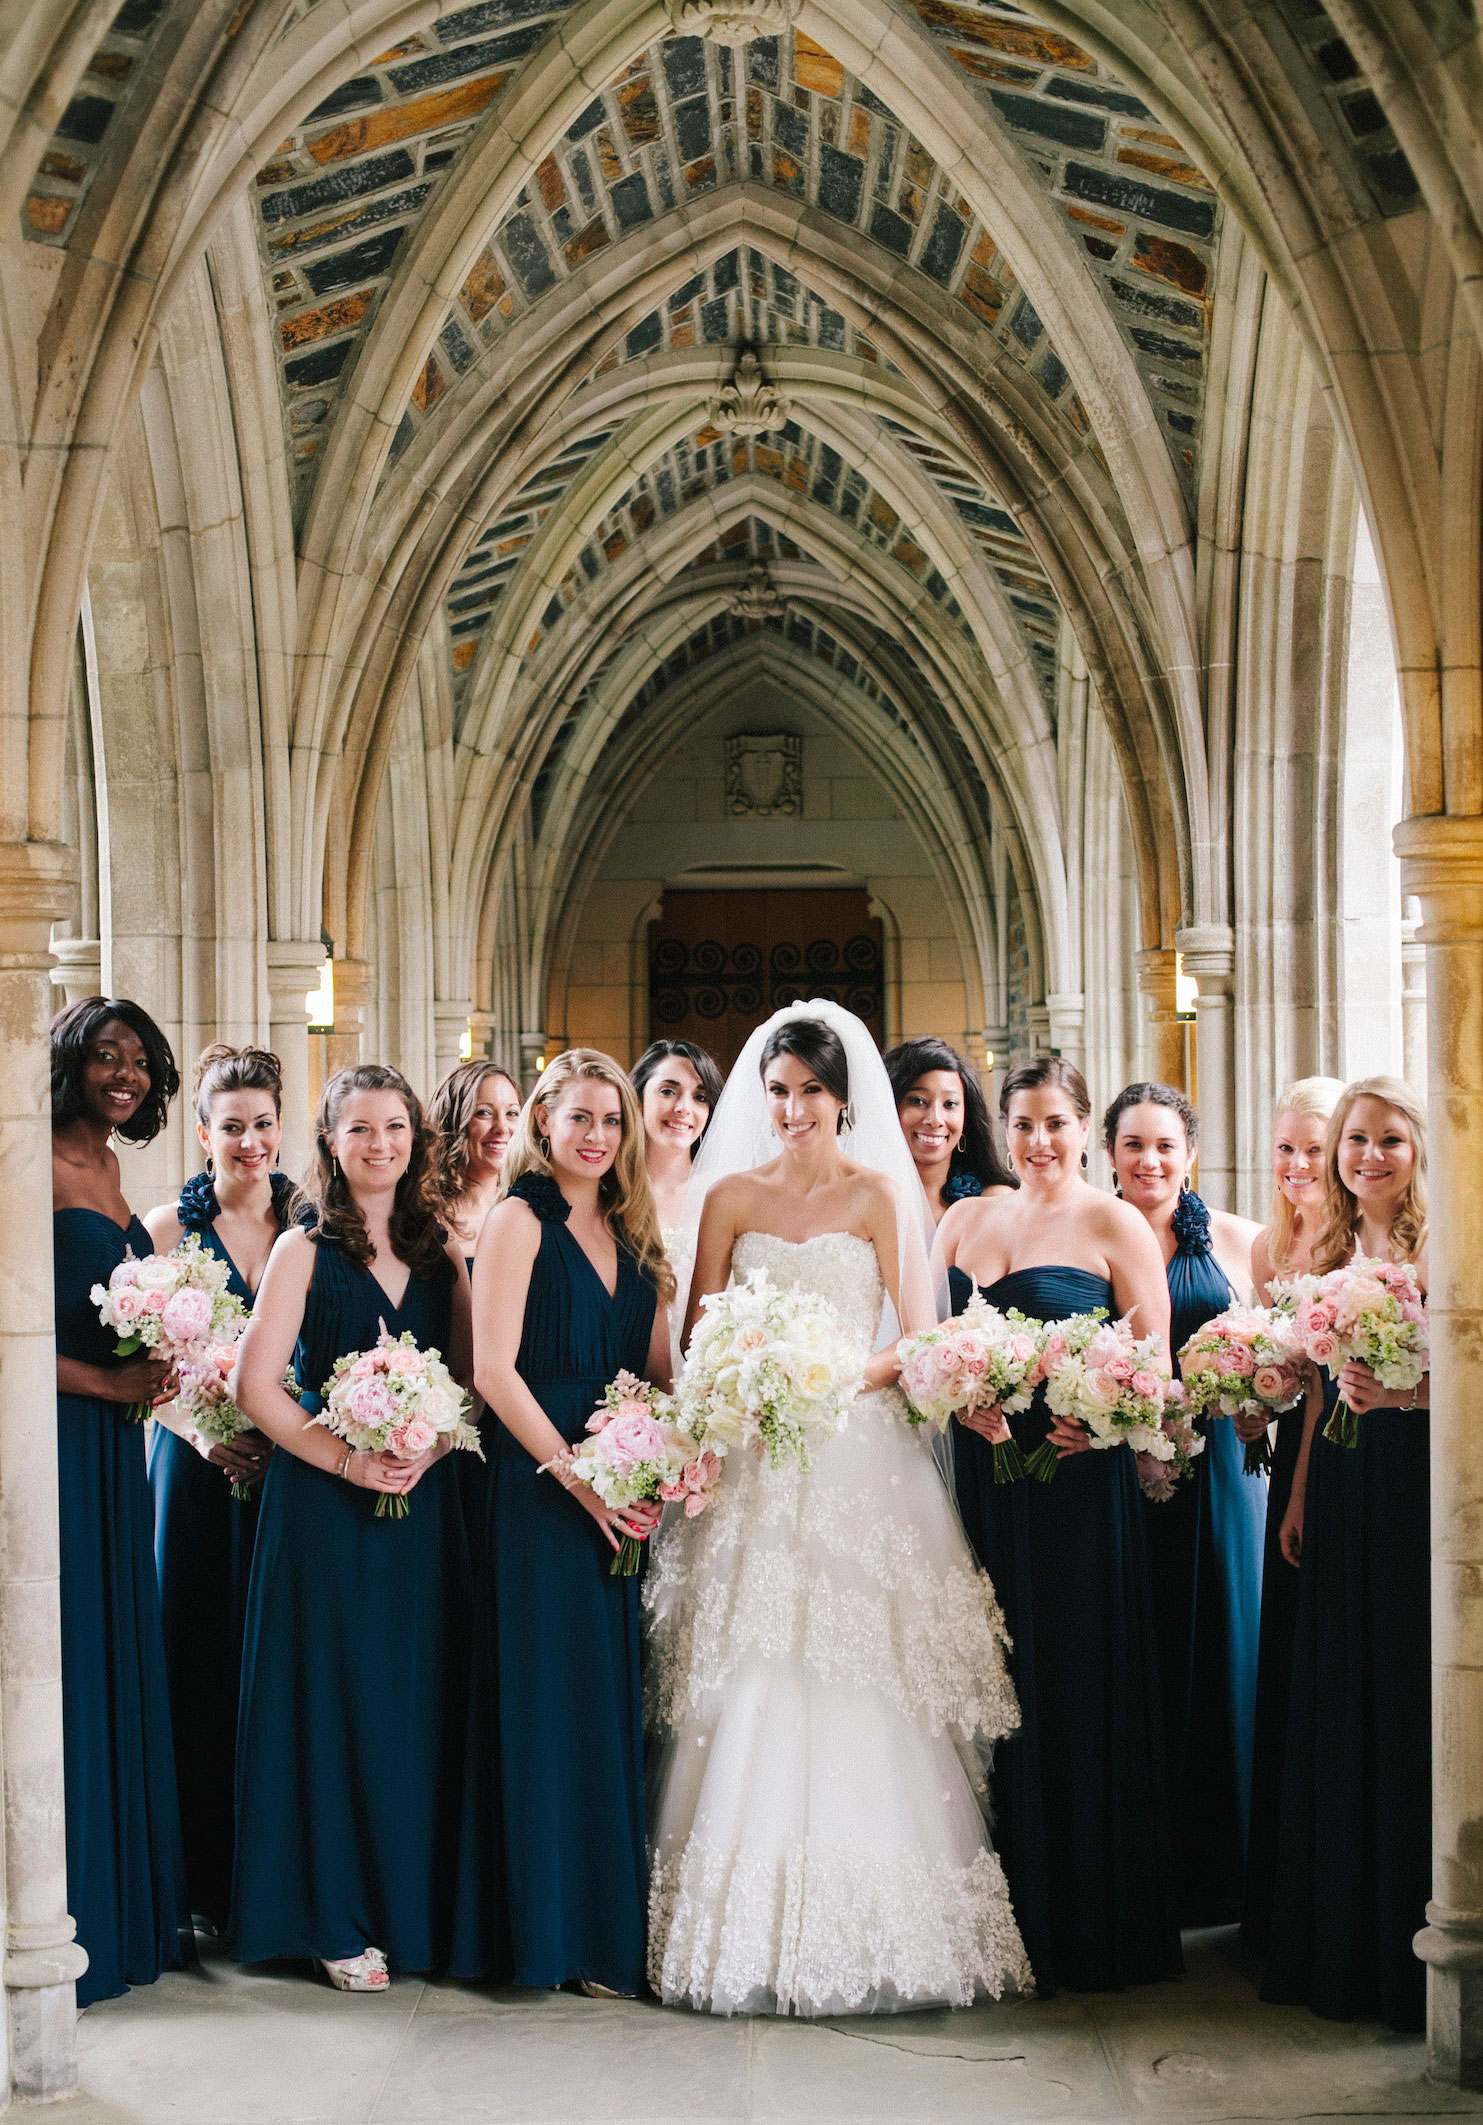 Bridesmaids different dresses same color navy blue